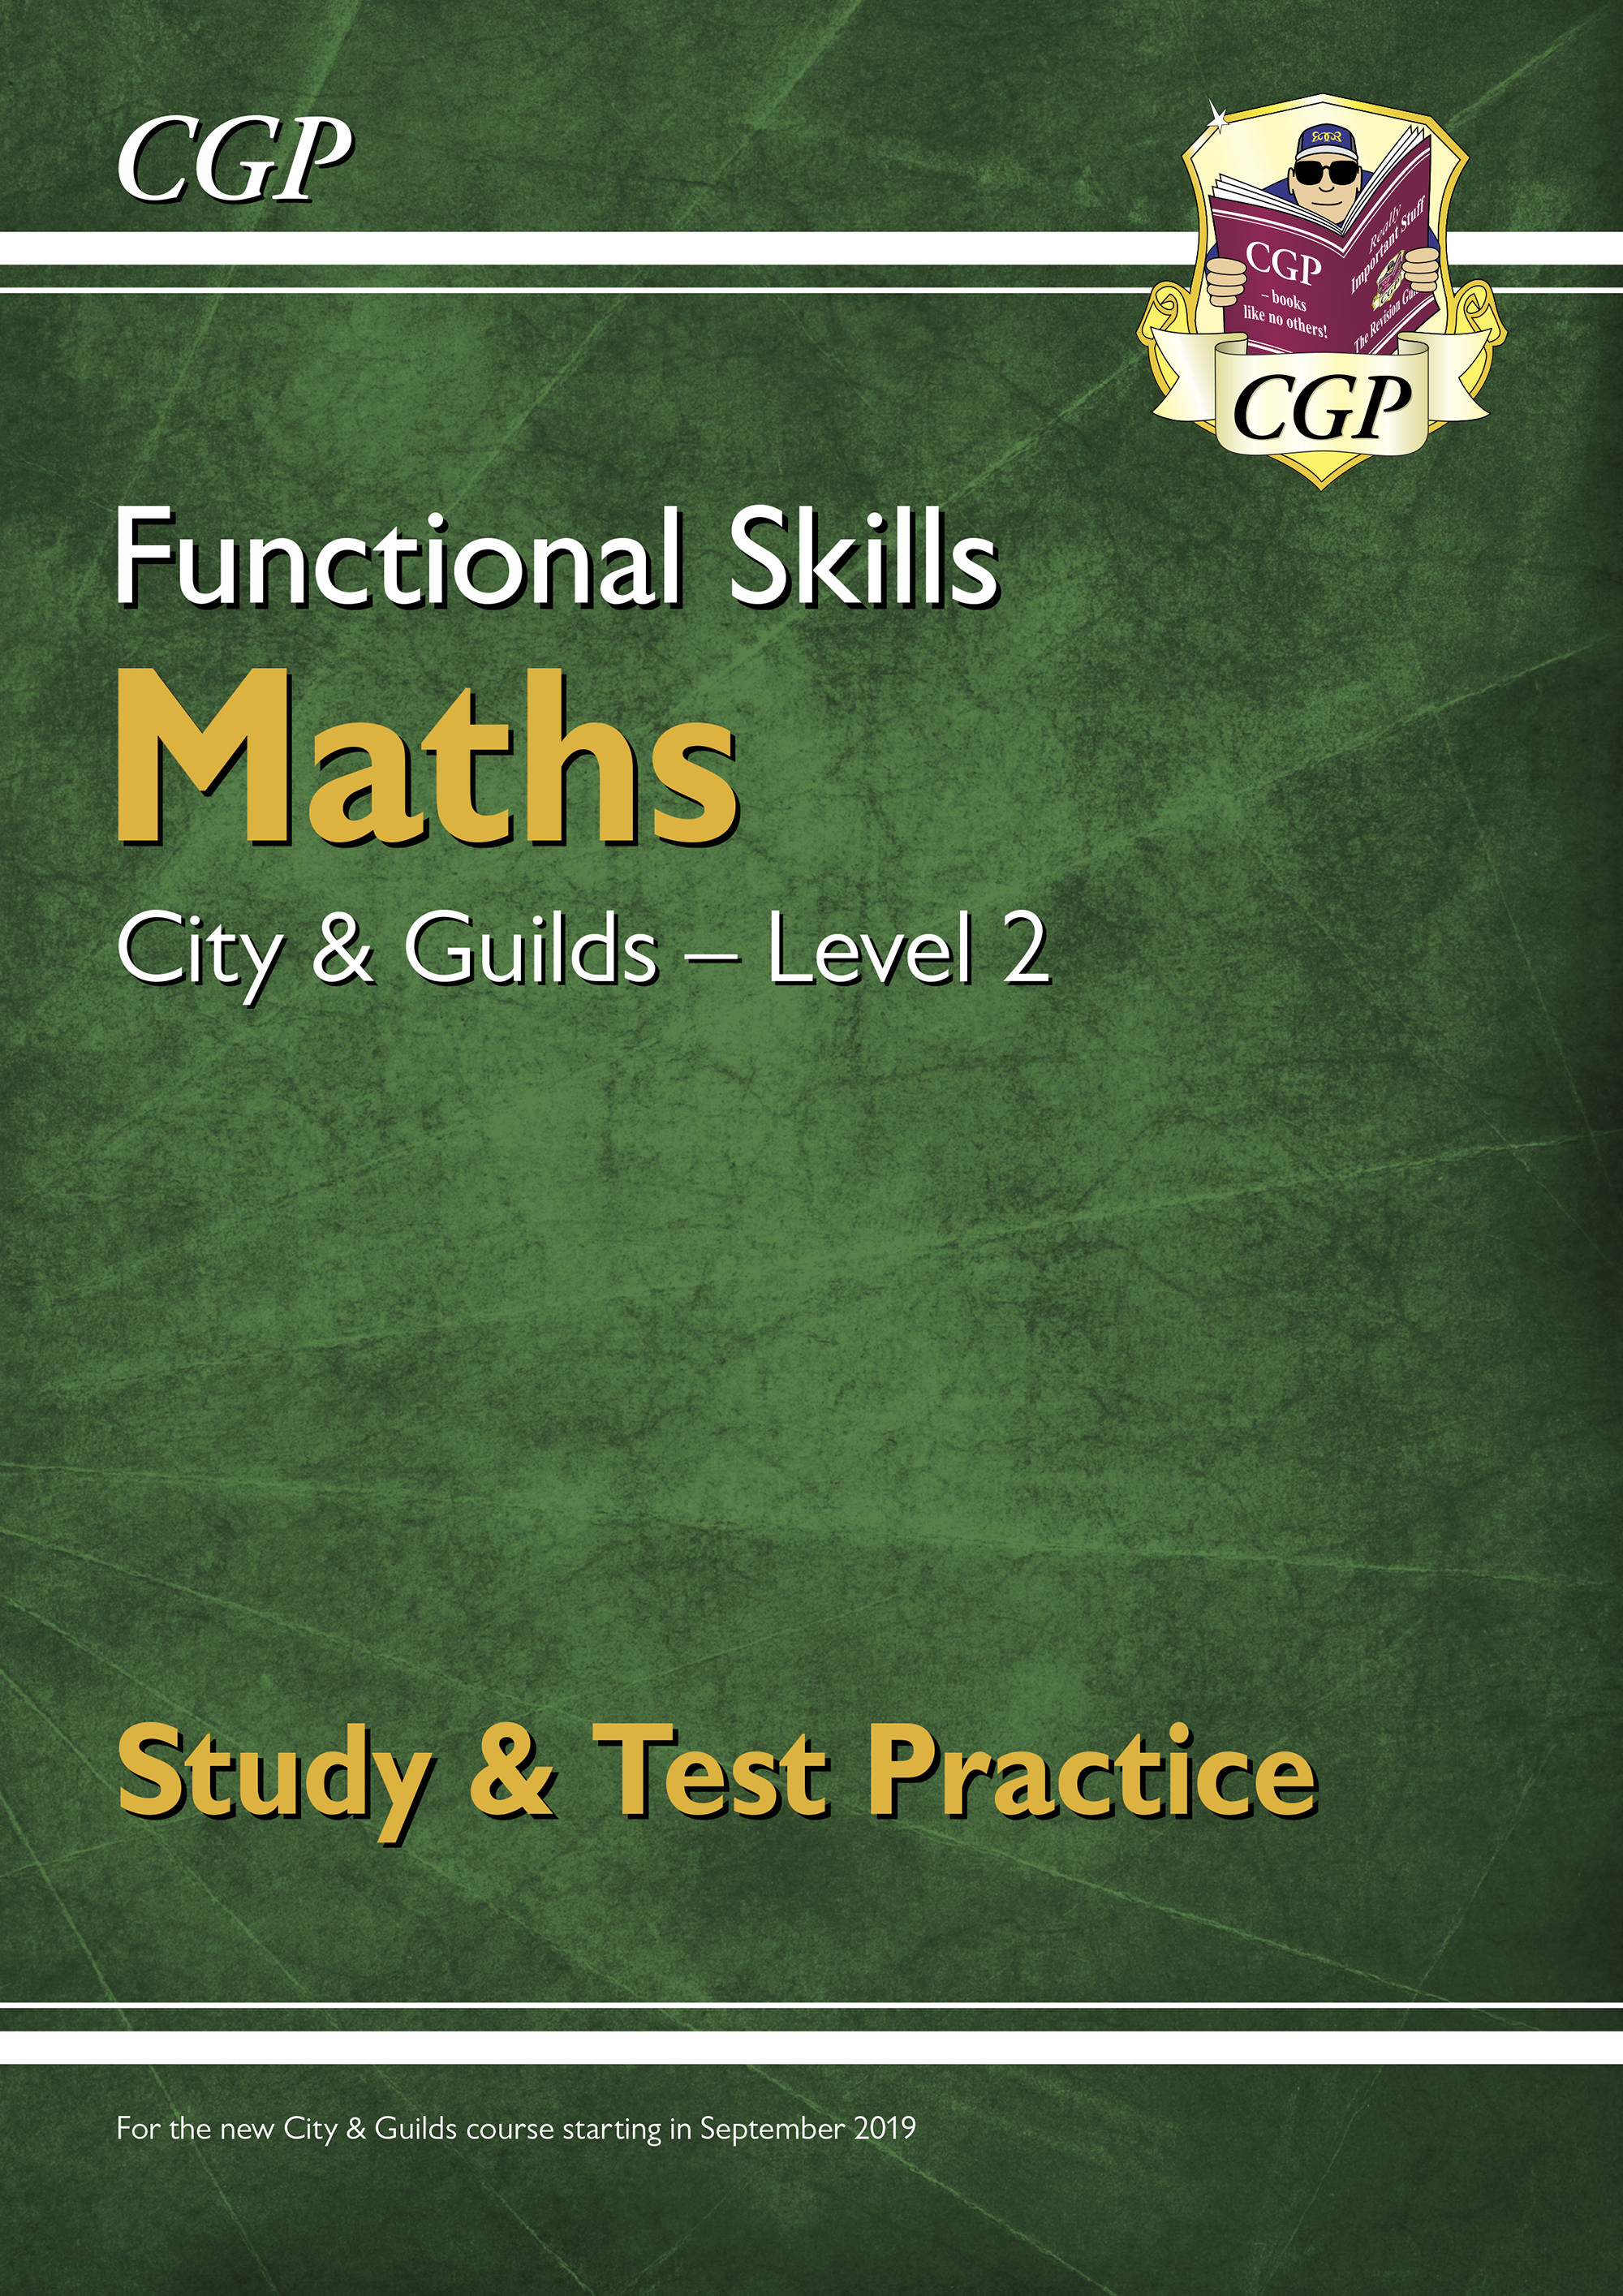 M2CGSRA1DK - New Functional Skills Maths: City & Guilds Level 2 - Study & Test Practice (for 2020 &